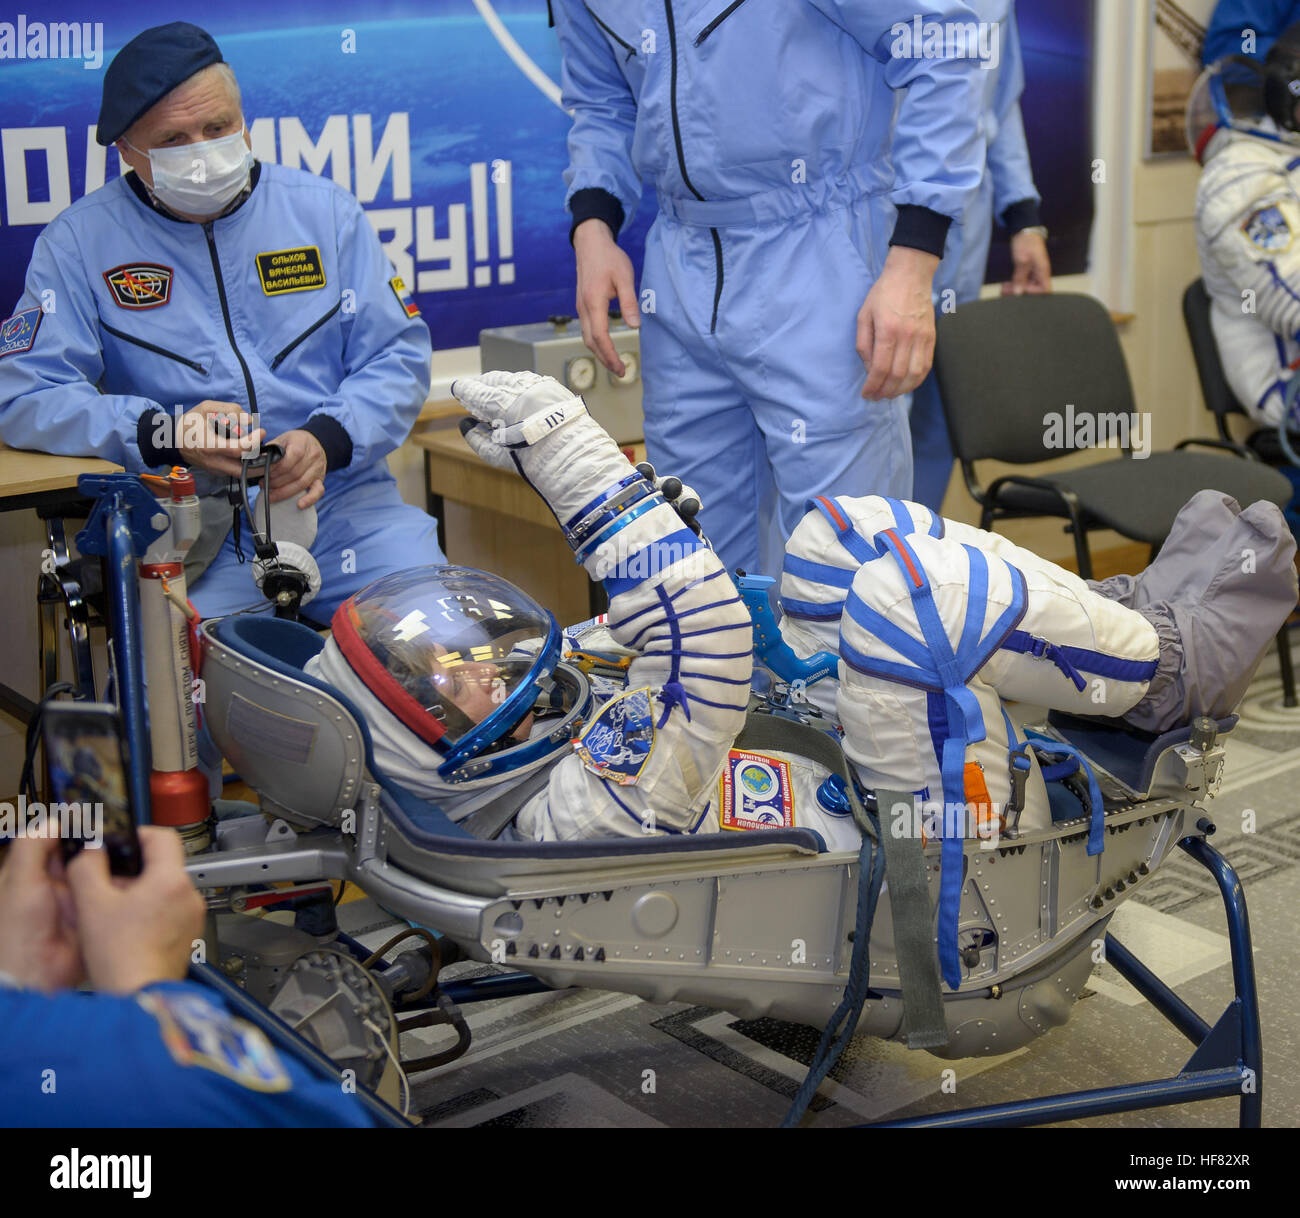 Expedition 50 NASA astronaut Peggy Whitson has her Russian sokol suit pressure tested a few hours ahead of her launch - Stock Image